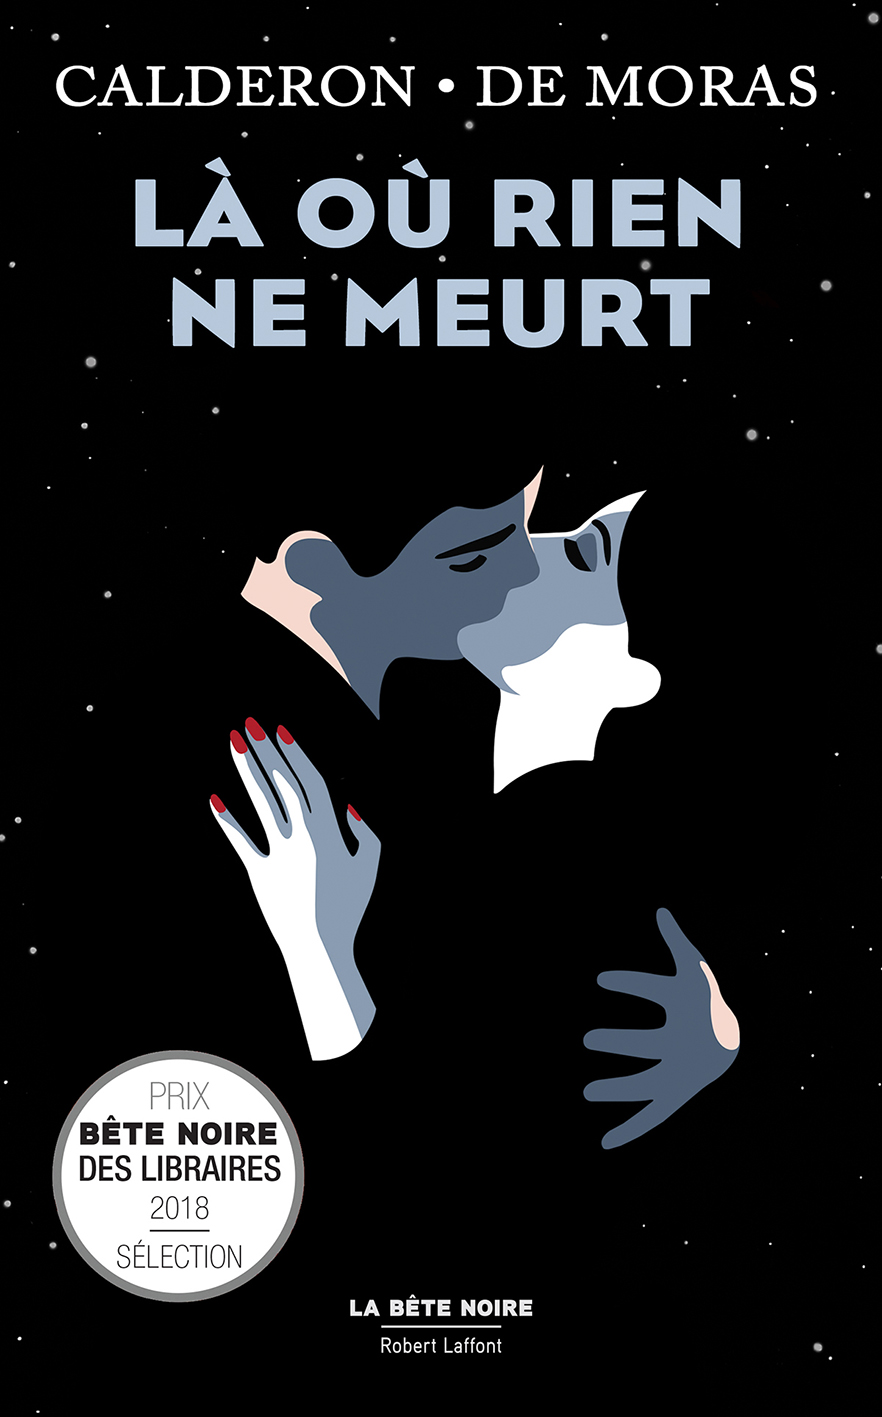 Cover by Mathilde Crétier